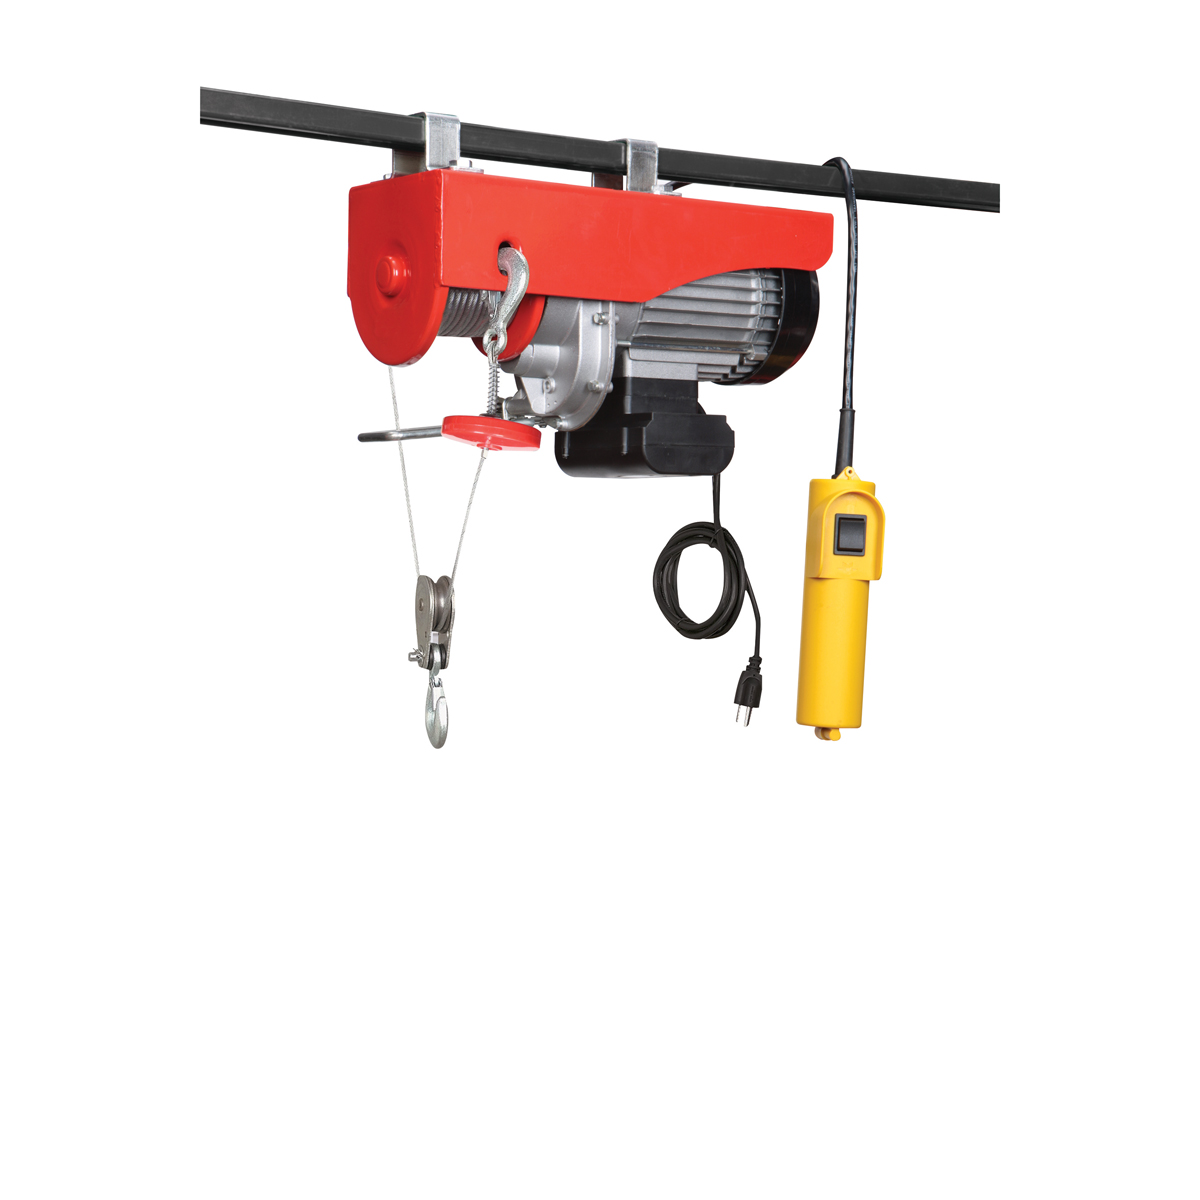 hight resolution of electric hoist with remote control